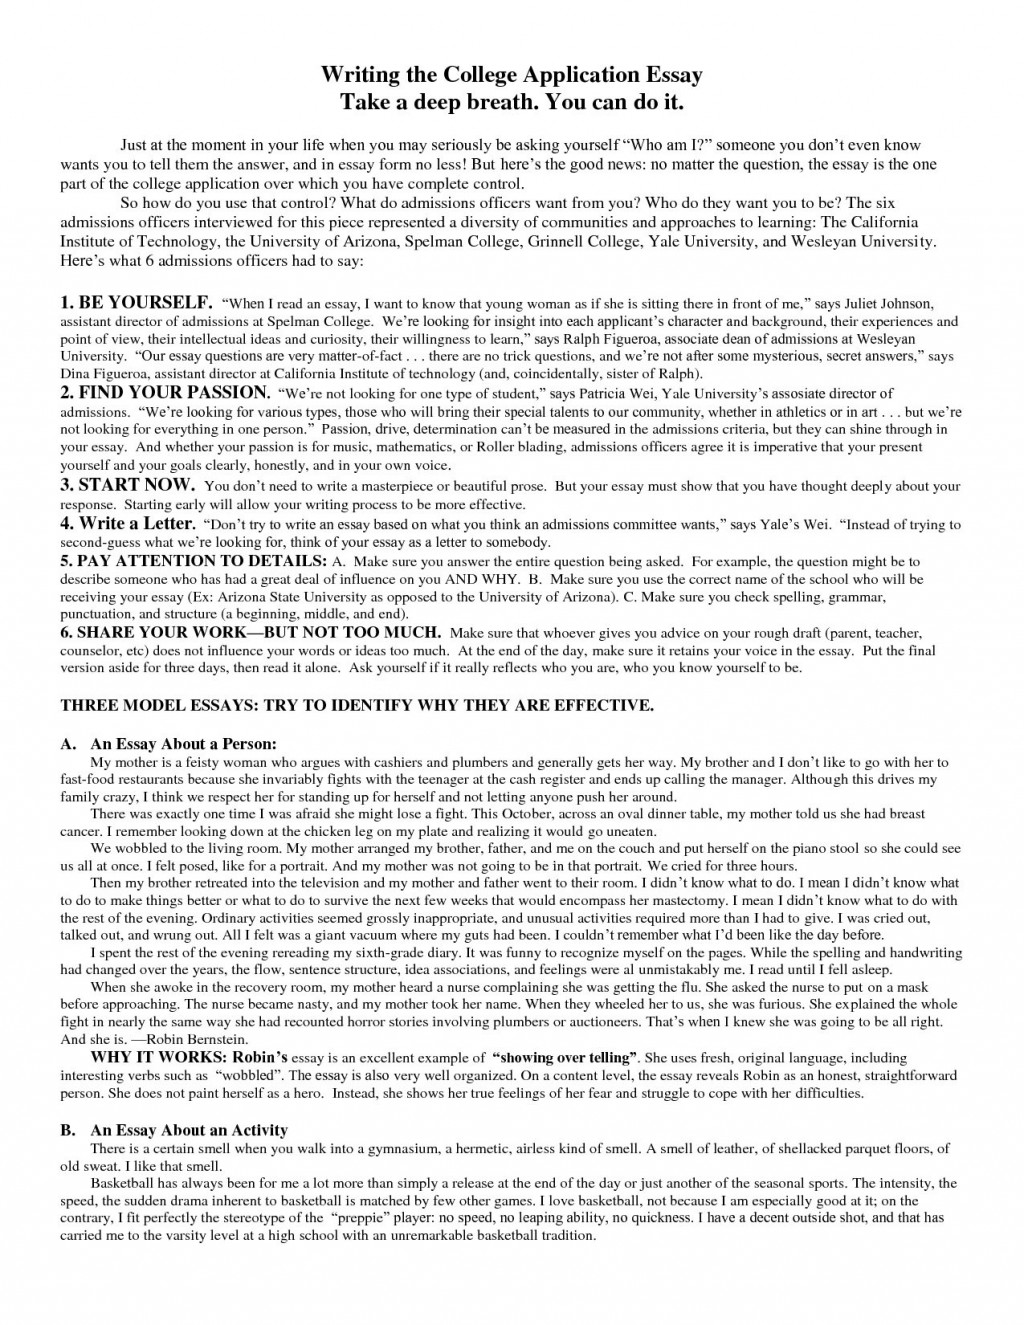 002 College Essays Writings And Top Personal Writing For Hire University How To Write Application Staggering Essay Examples 2017 Large